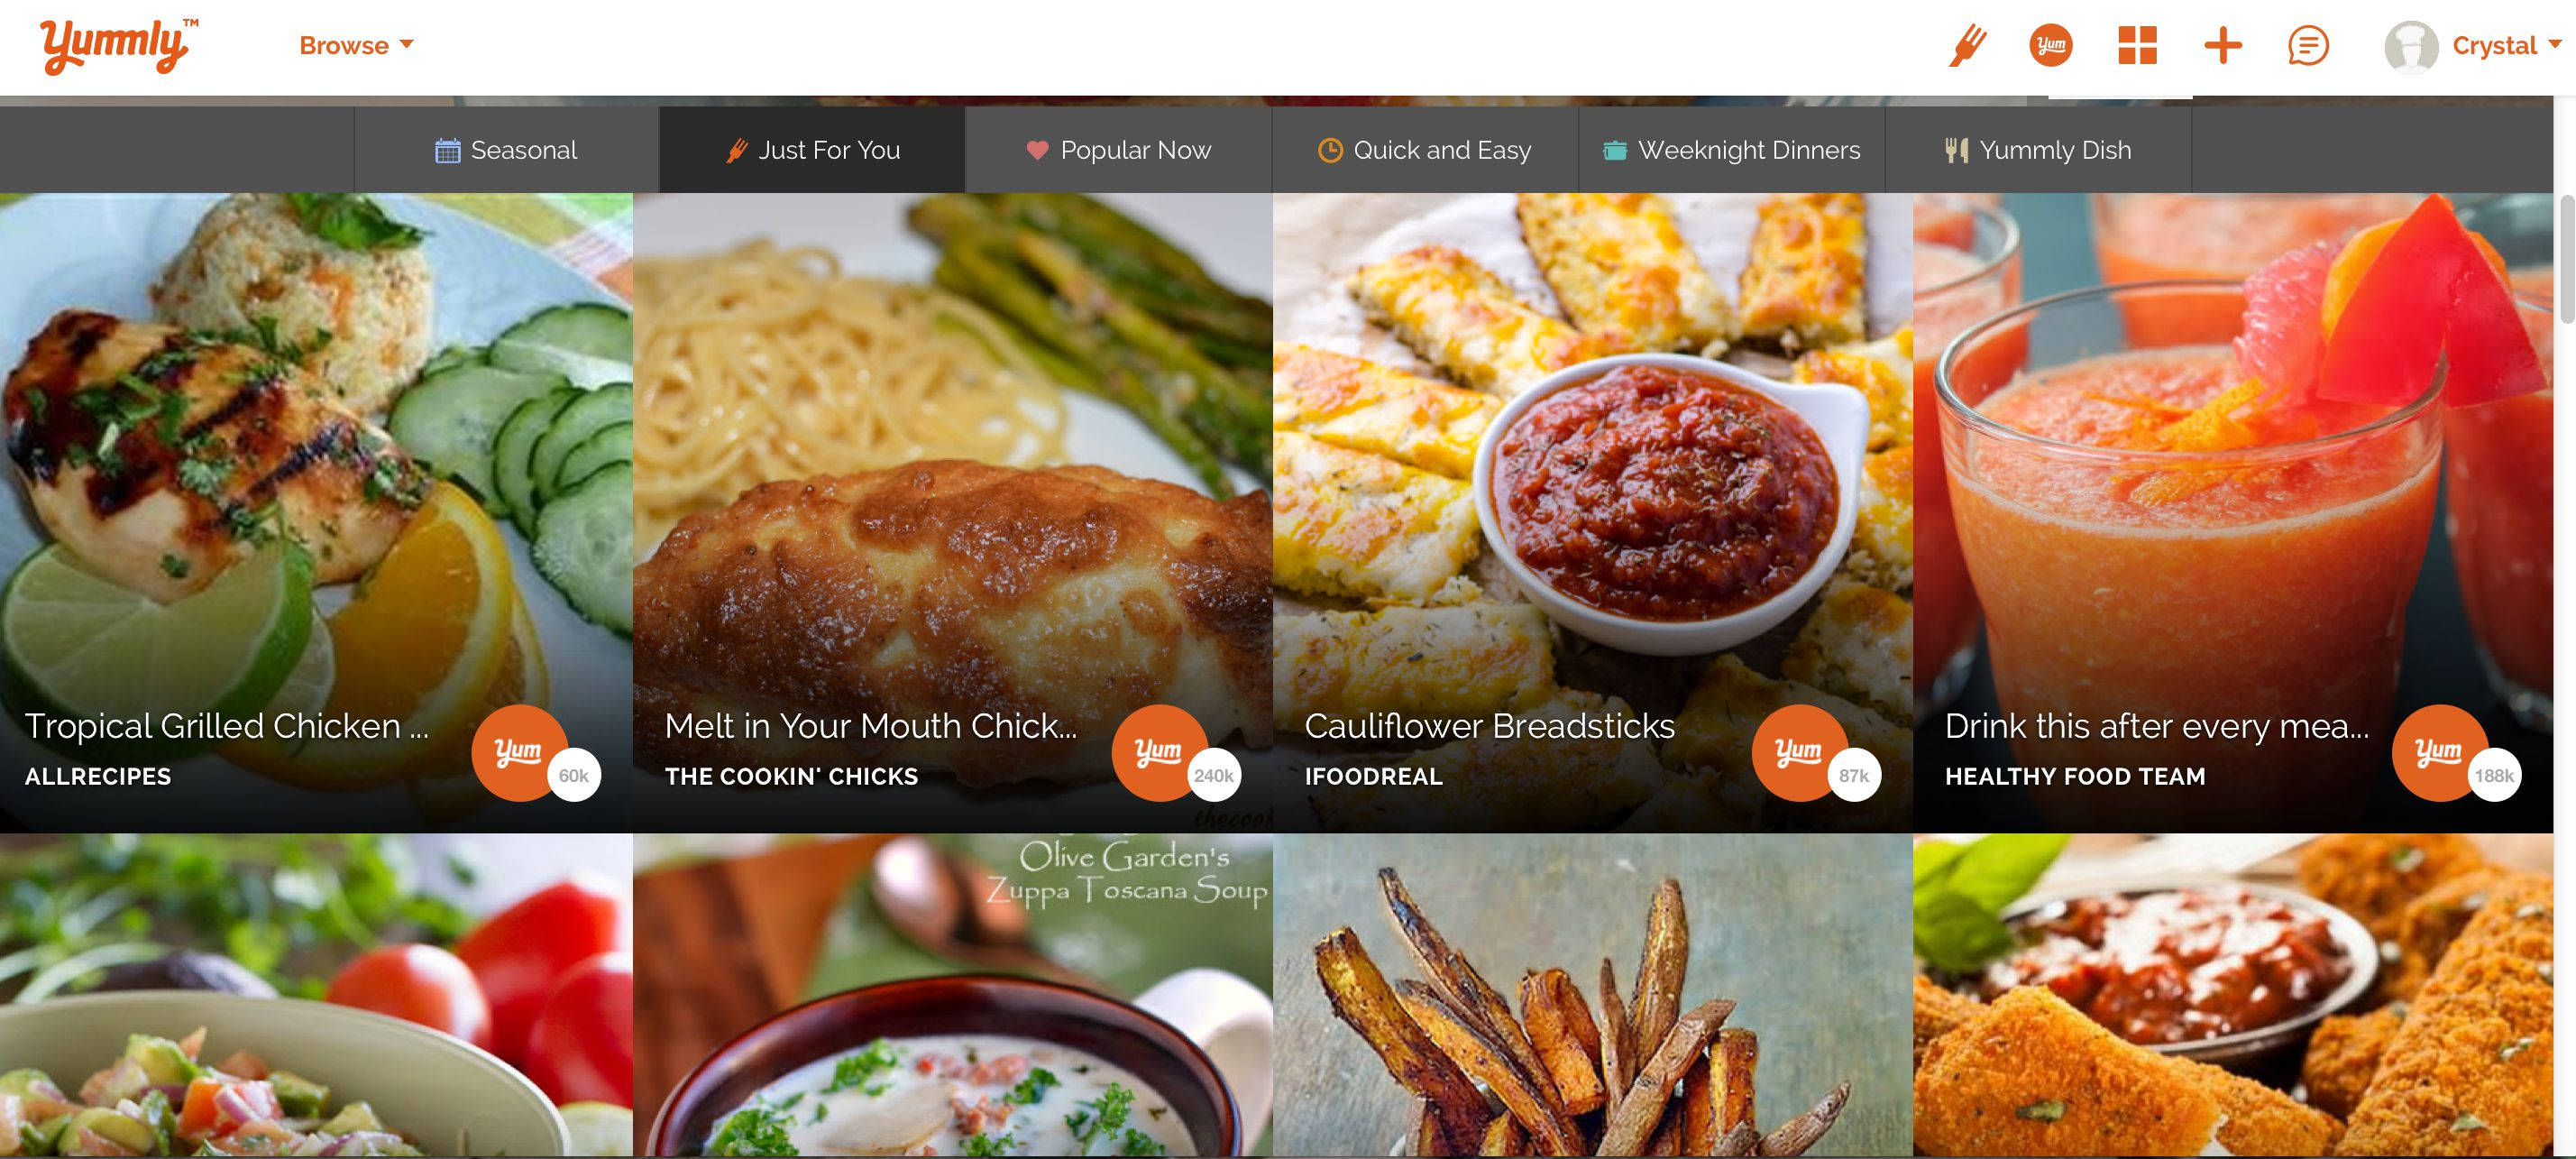 How to use Yummly to save recipes to your online recipe box.